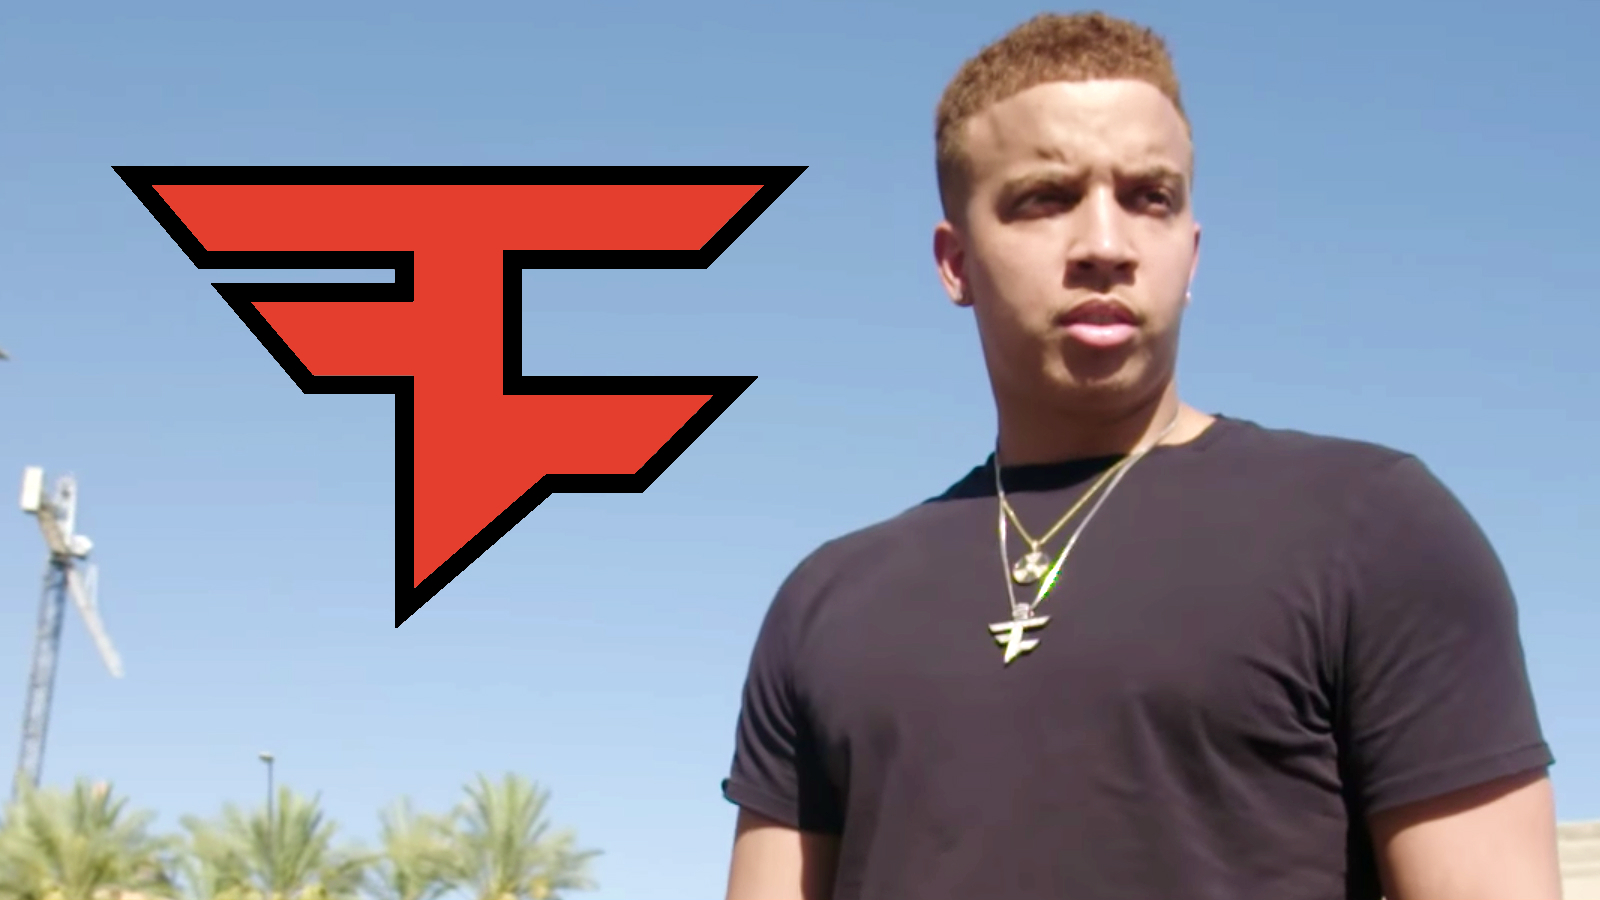 Swagg and FaZe logo outside